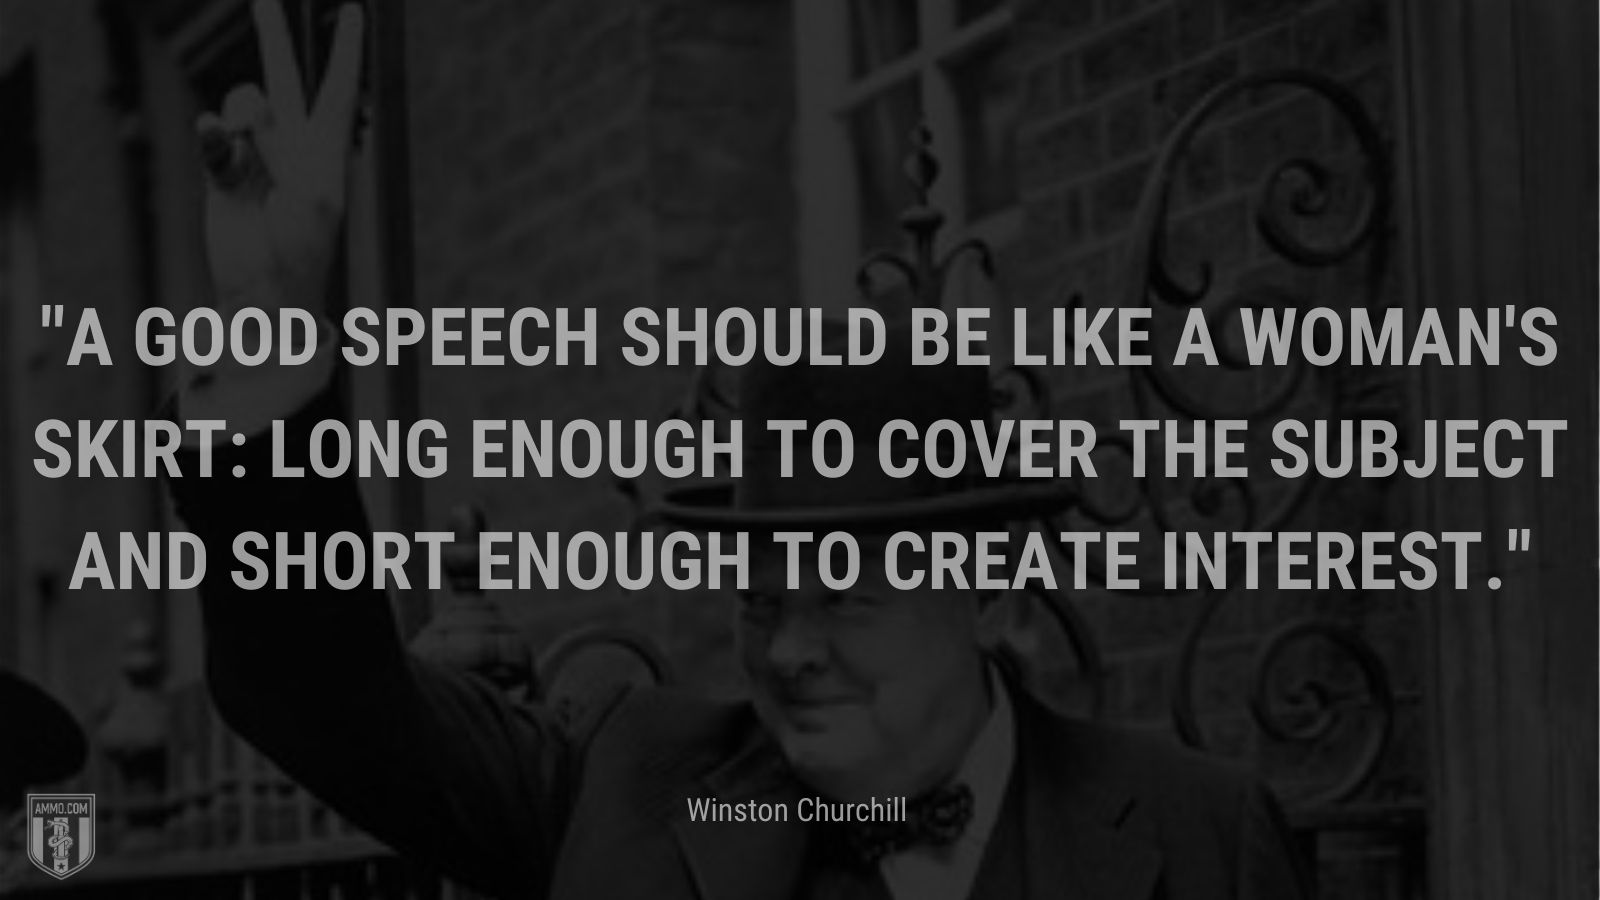 A good speech should be like a woman's skirt: long enough to cover the subject and short enough to create interest.